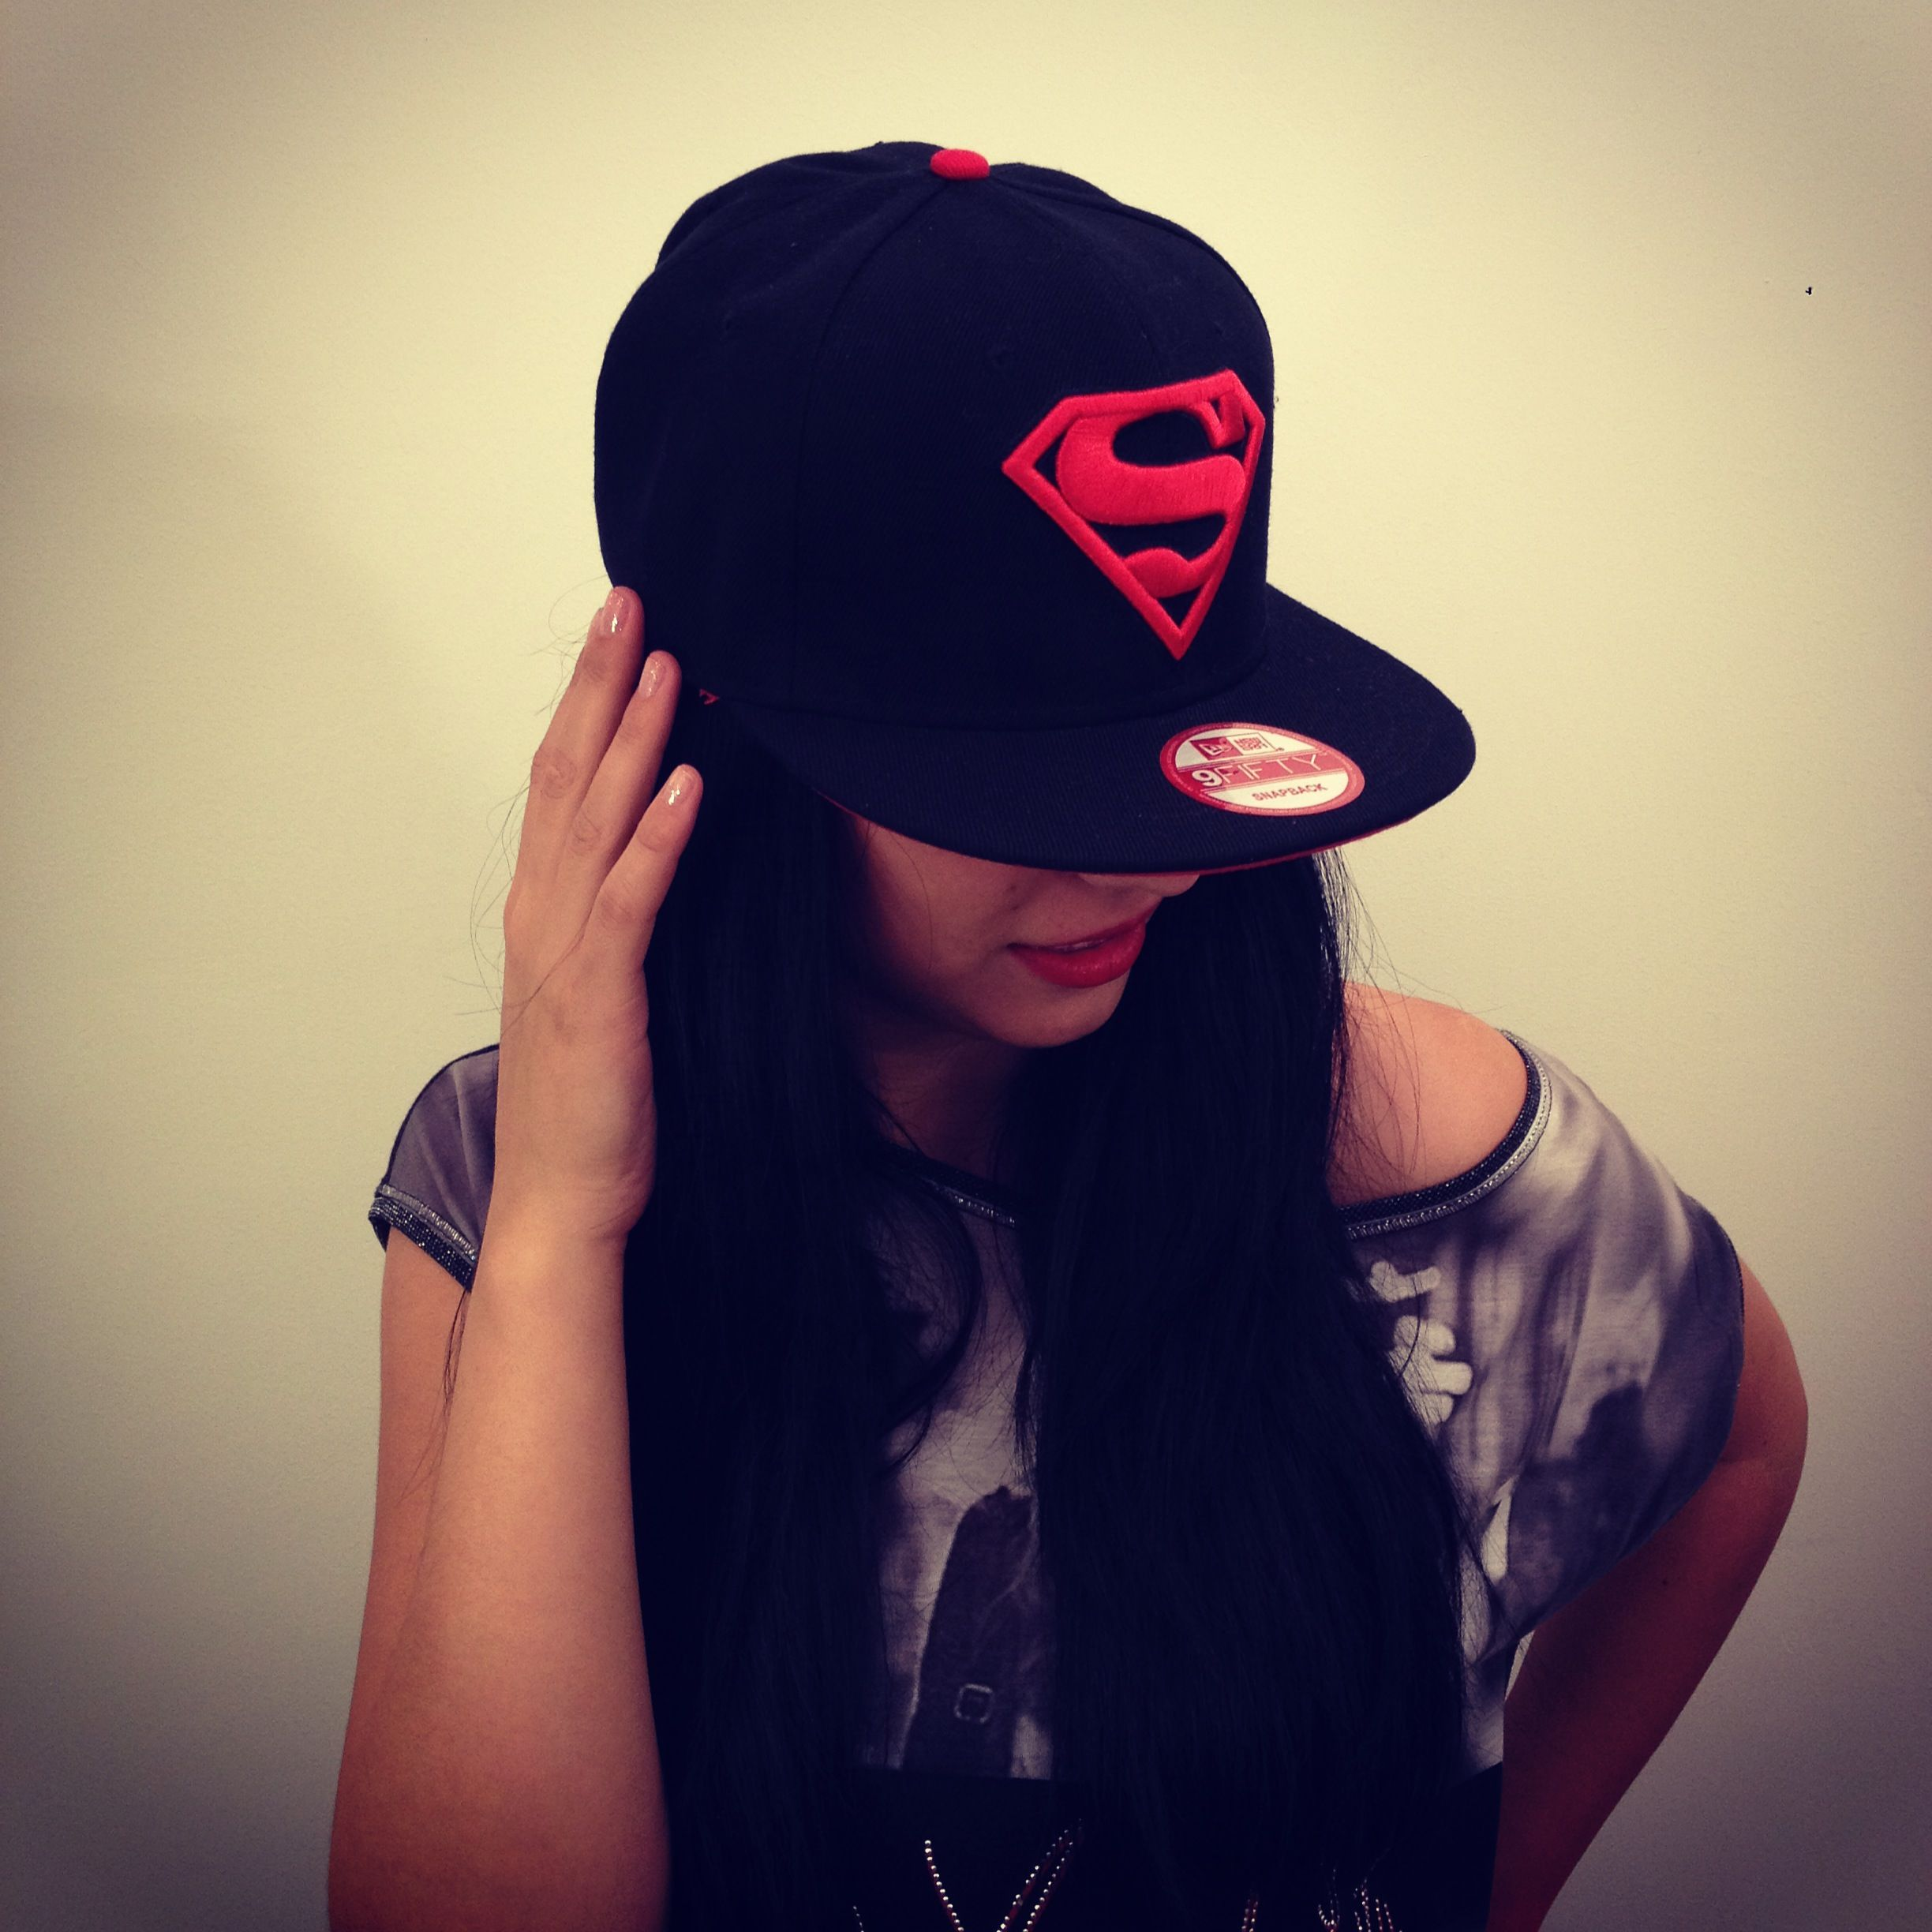 Superman Шапка Права Козирка Цена New Era SuperSwag.eu , Swag Clothеs, Hats  and Accessories hot girl wearing cool swag Snapback hat cap